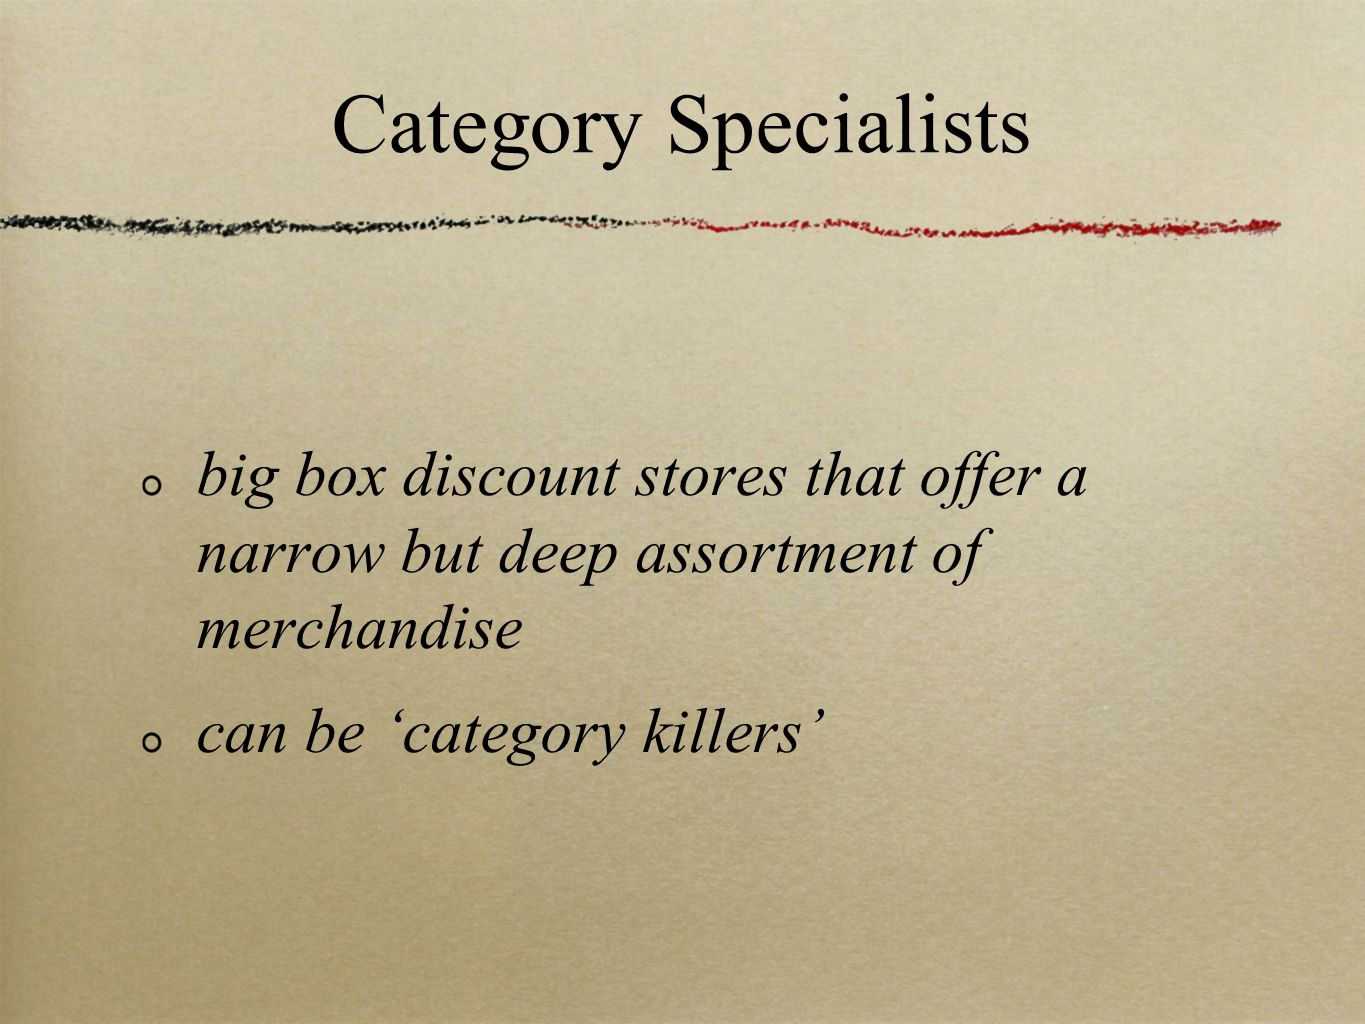 Category Specialists big box discount stores that offer a narrow but deep assortment of merchandise.